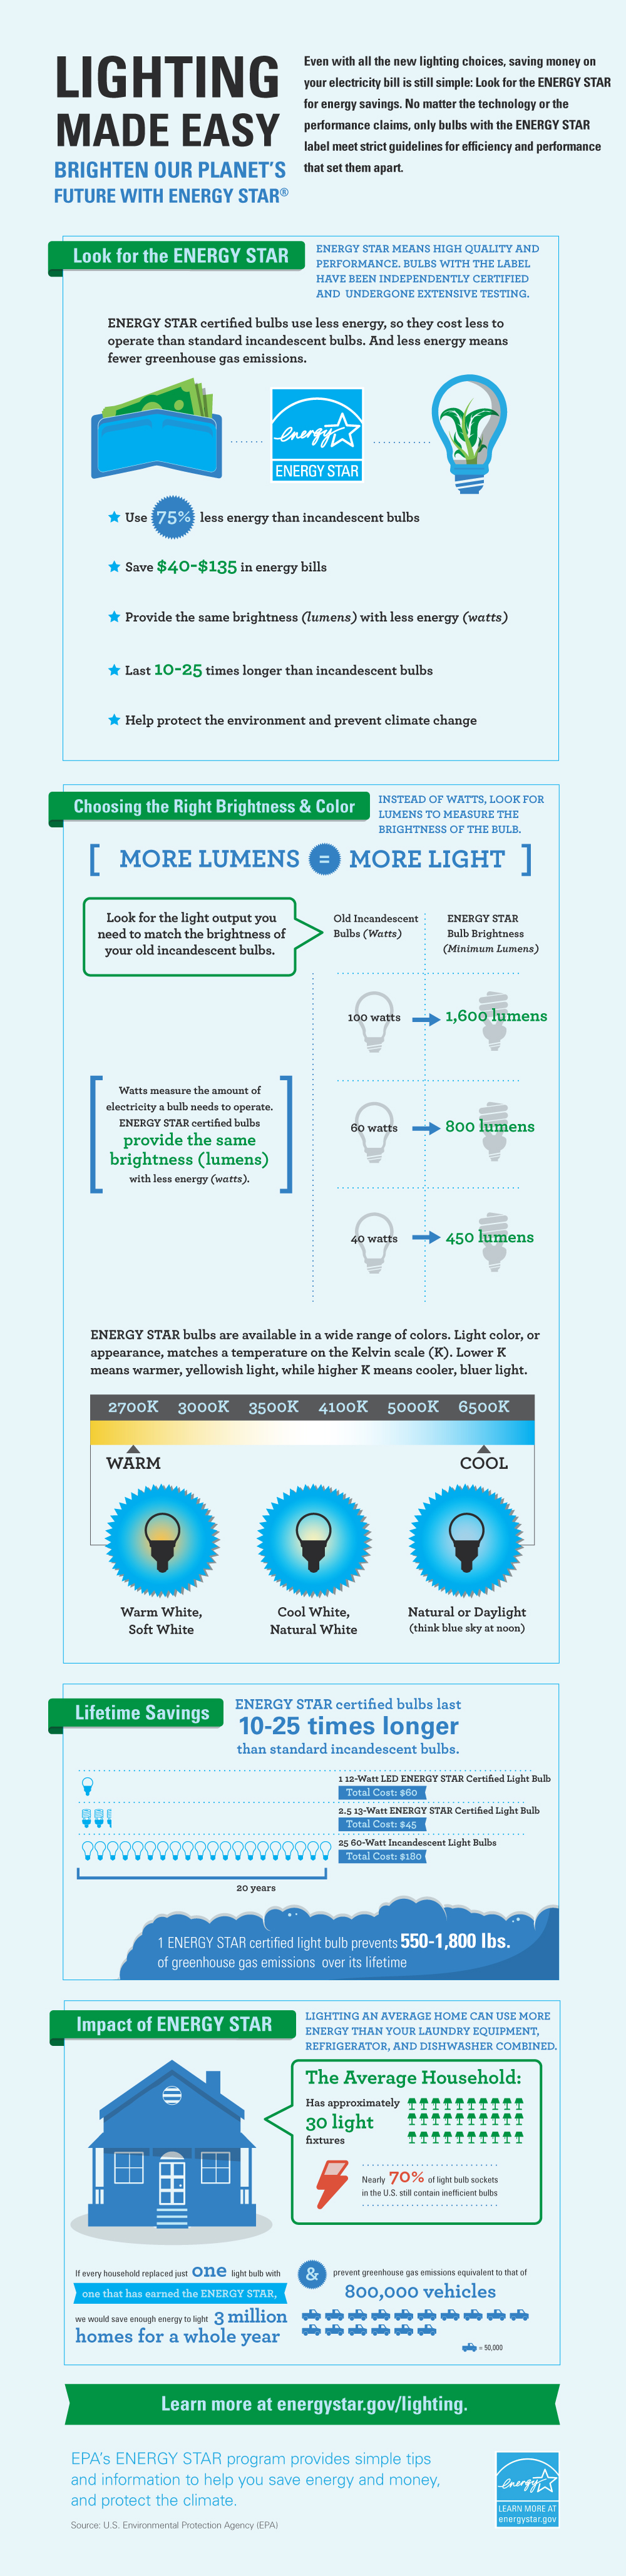 Lighting_Made_Easy_Infographic